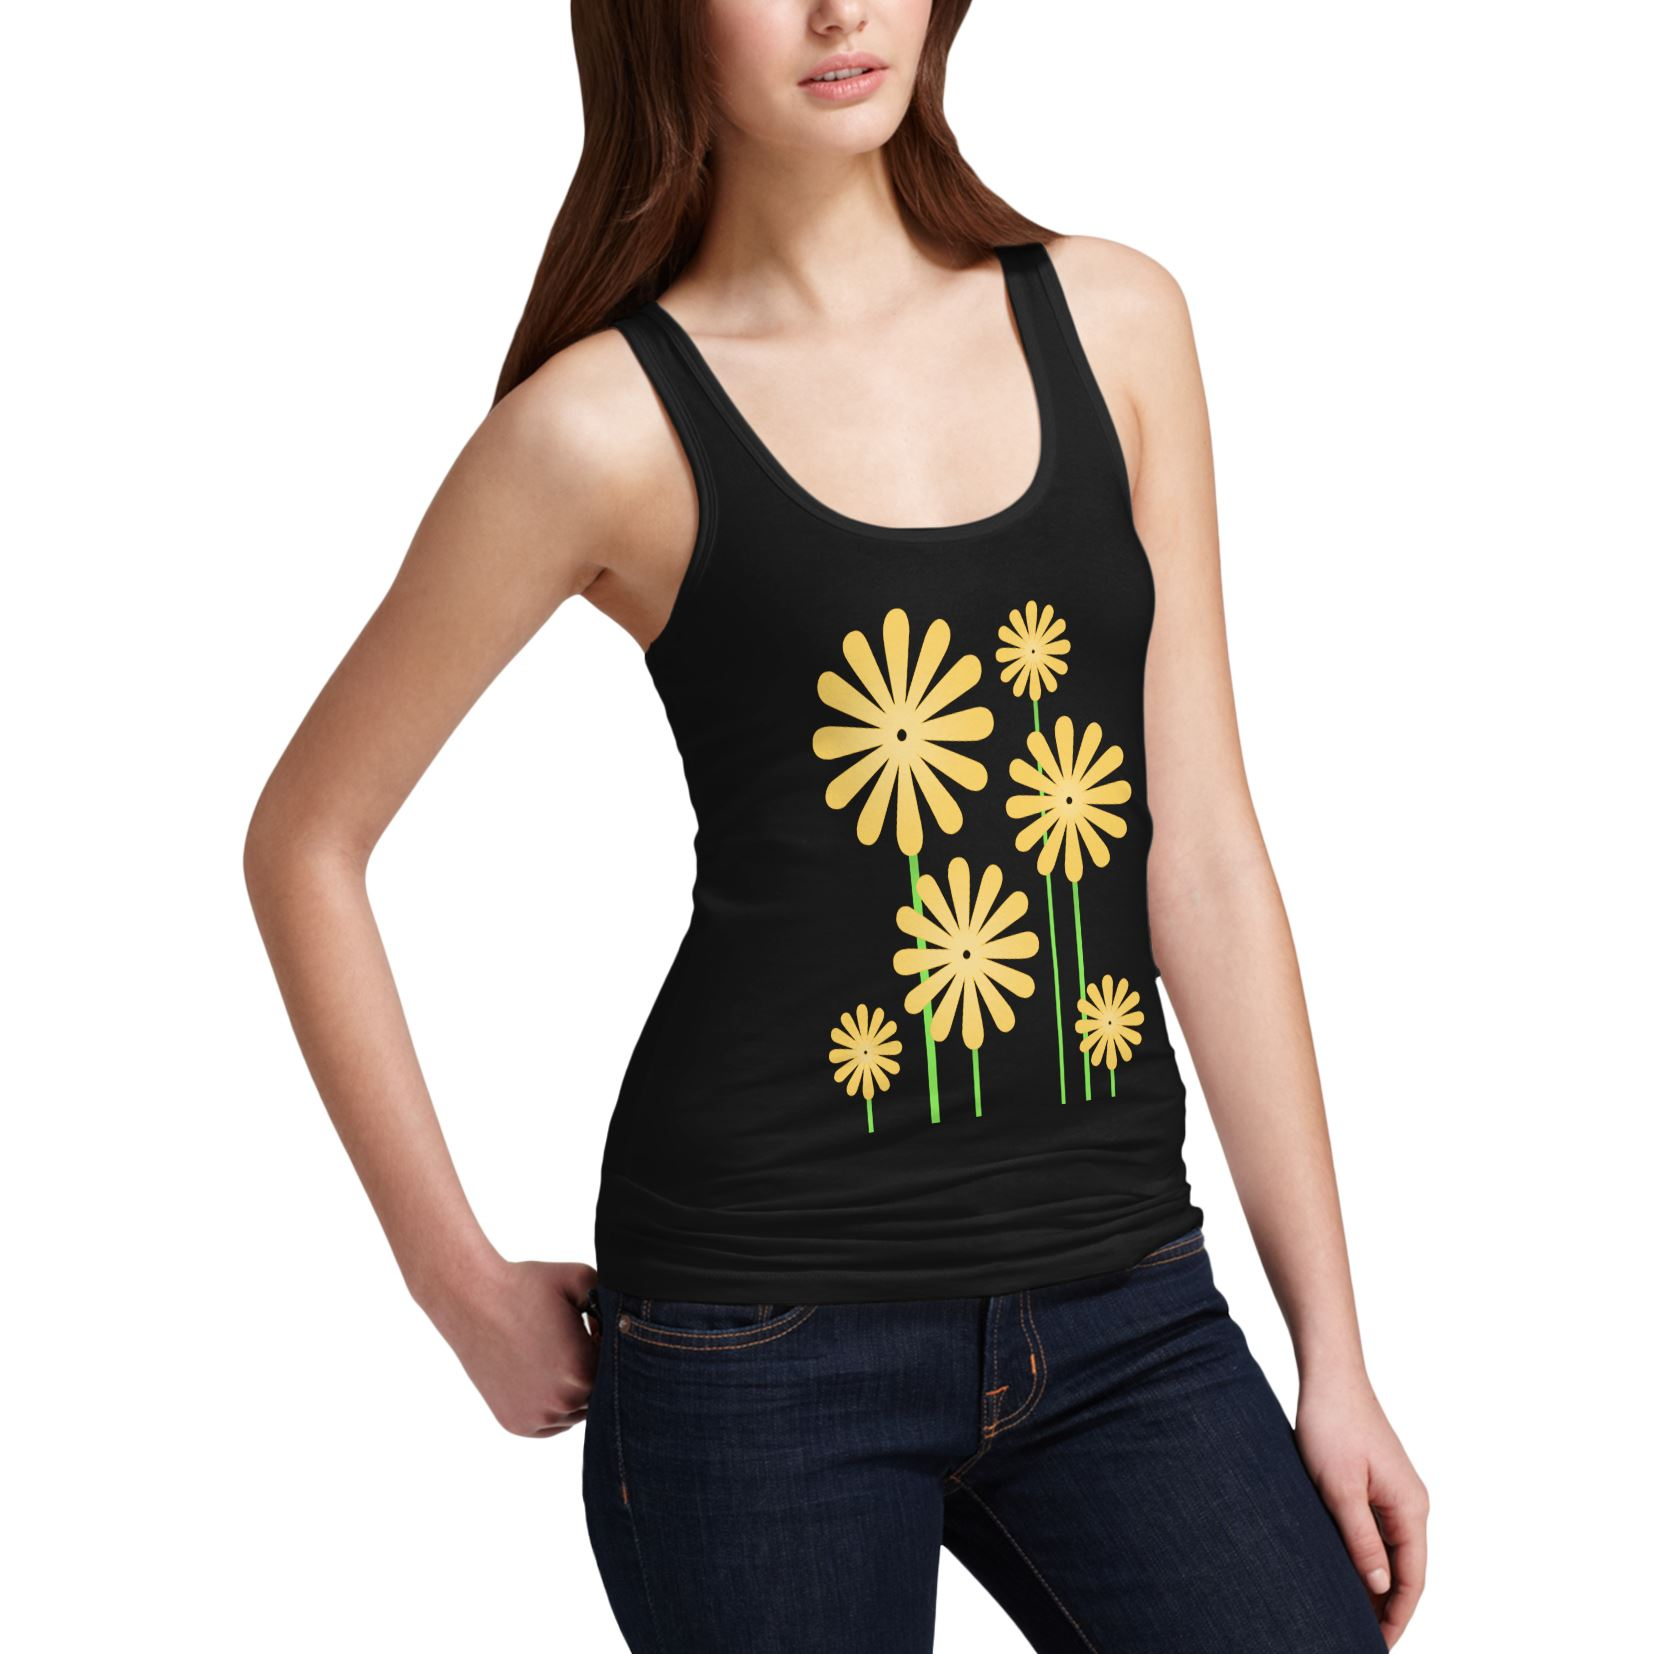 Twisted Envy Women/'s Yellow Flowers Novelty Tank Top